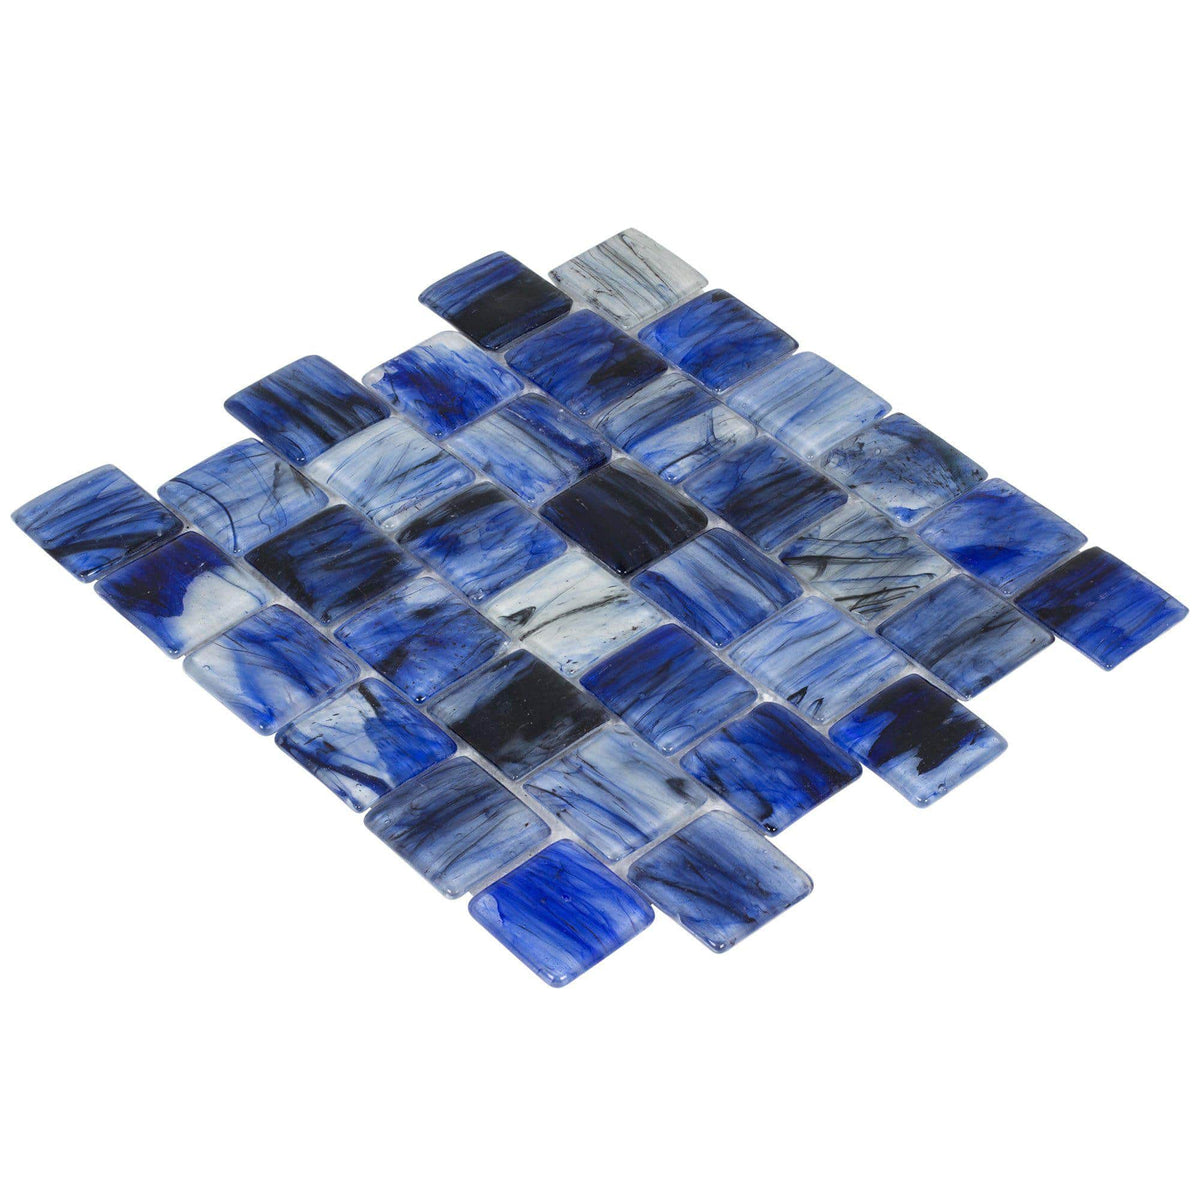 Mto0117 2x2 Pillowed Squares Blue Black Glossy Translucent